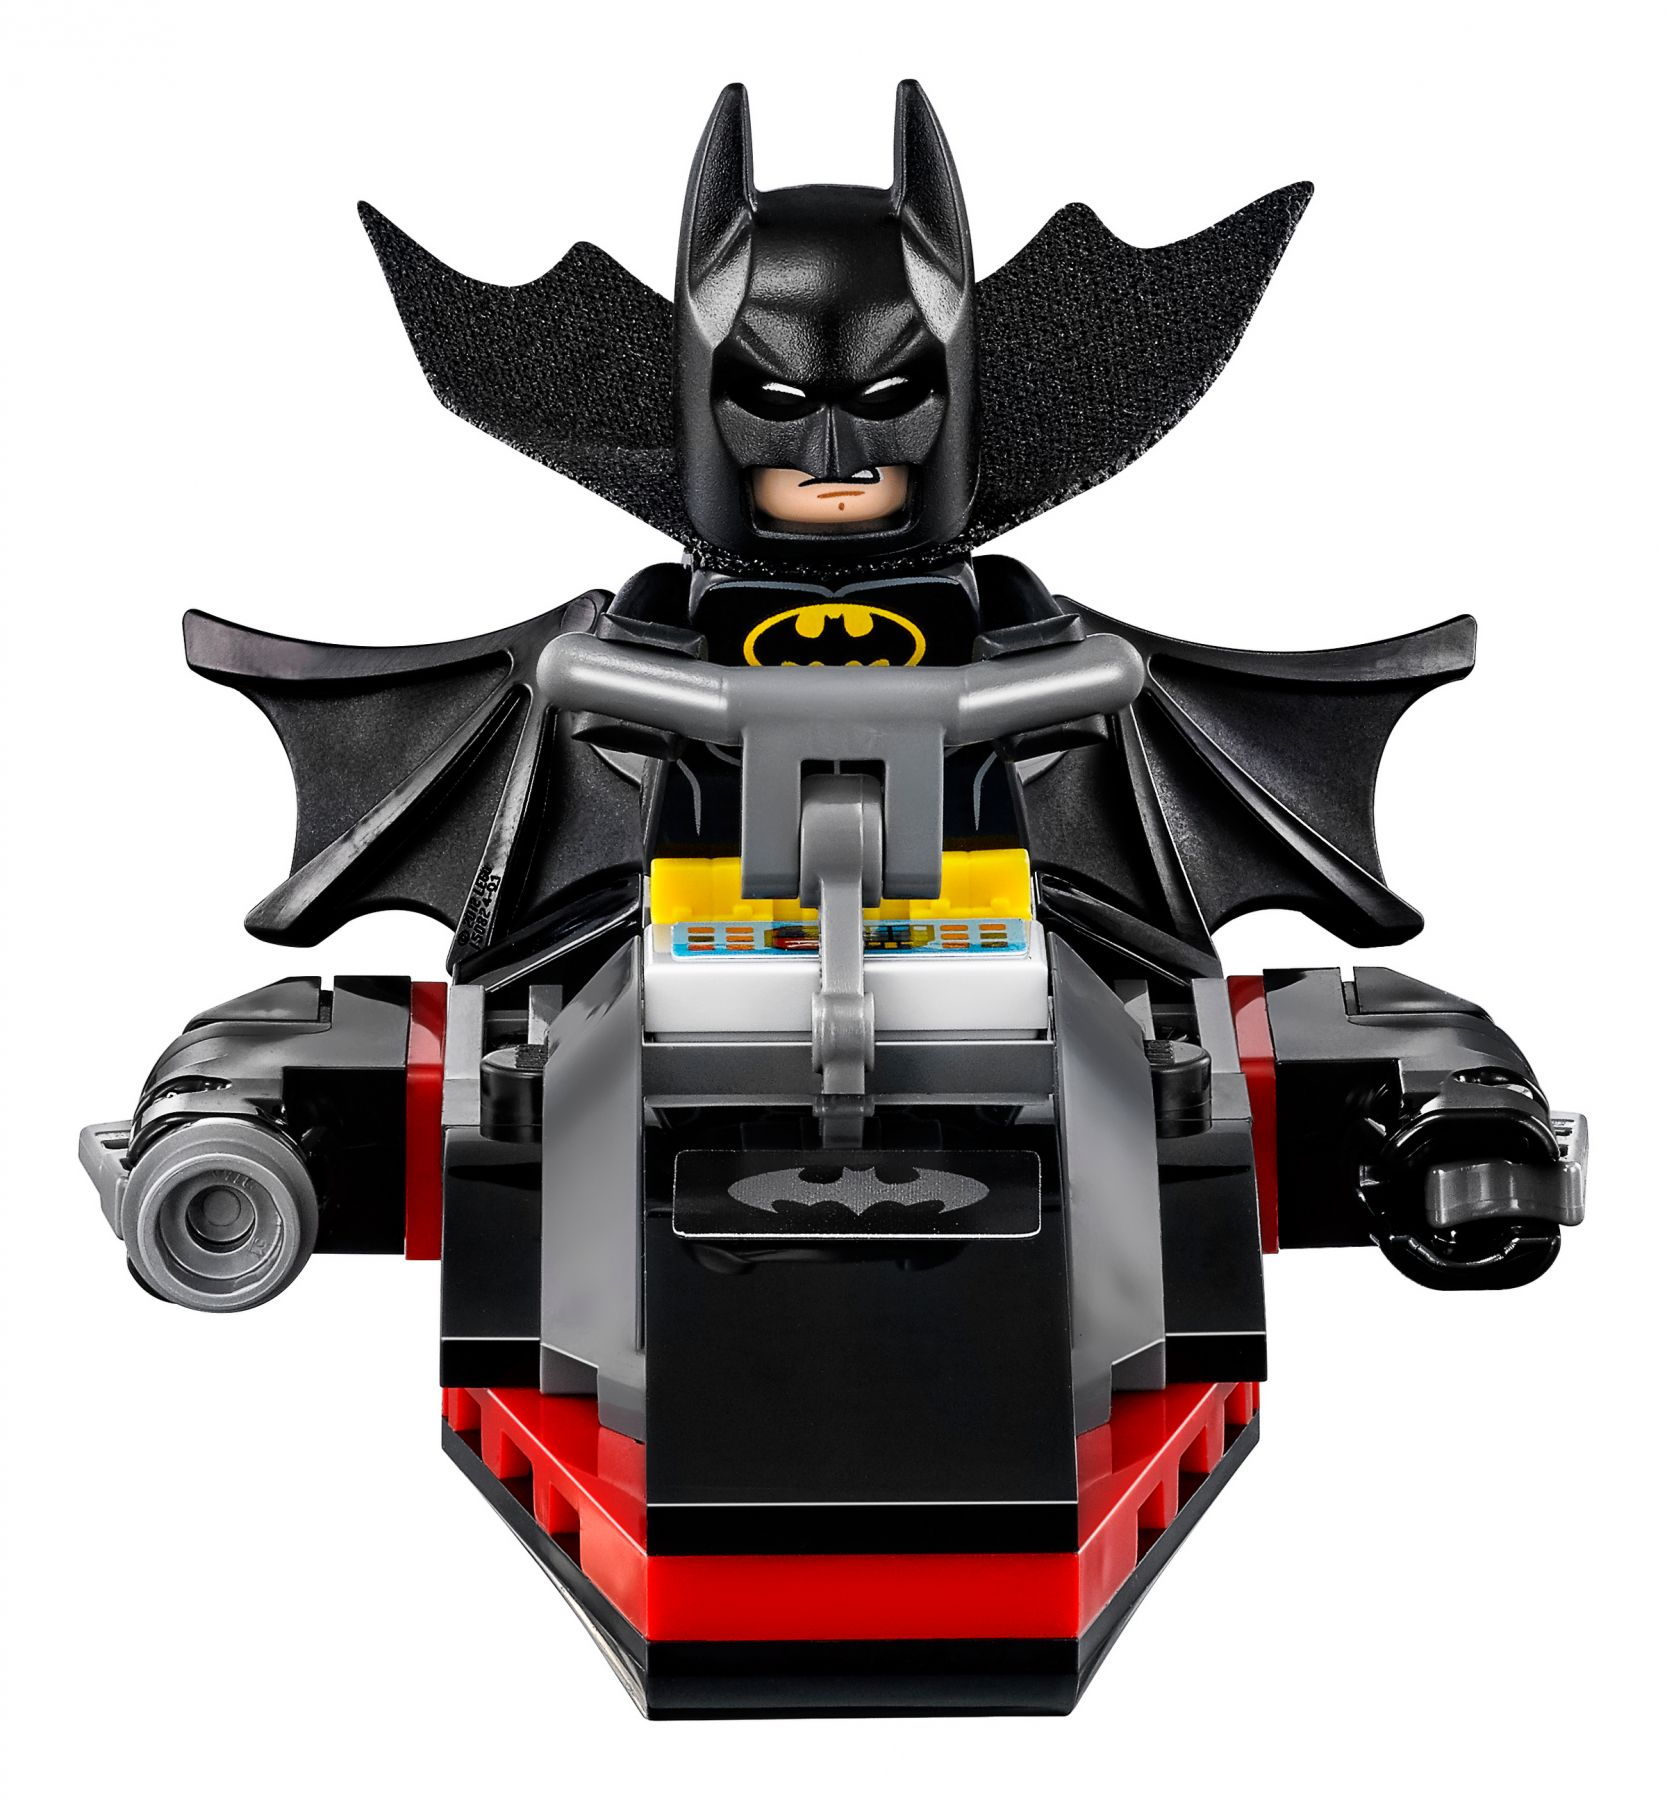 LEGO The LEGO Batman Movie 70907 Killer Crocs Truck LEGO_70907_alt6.jpg